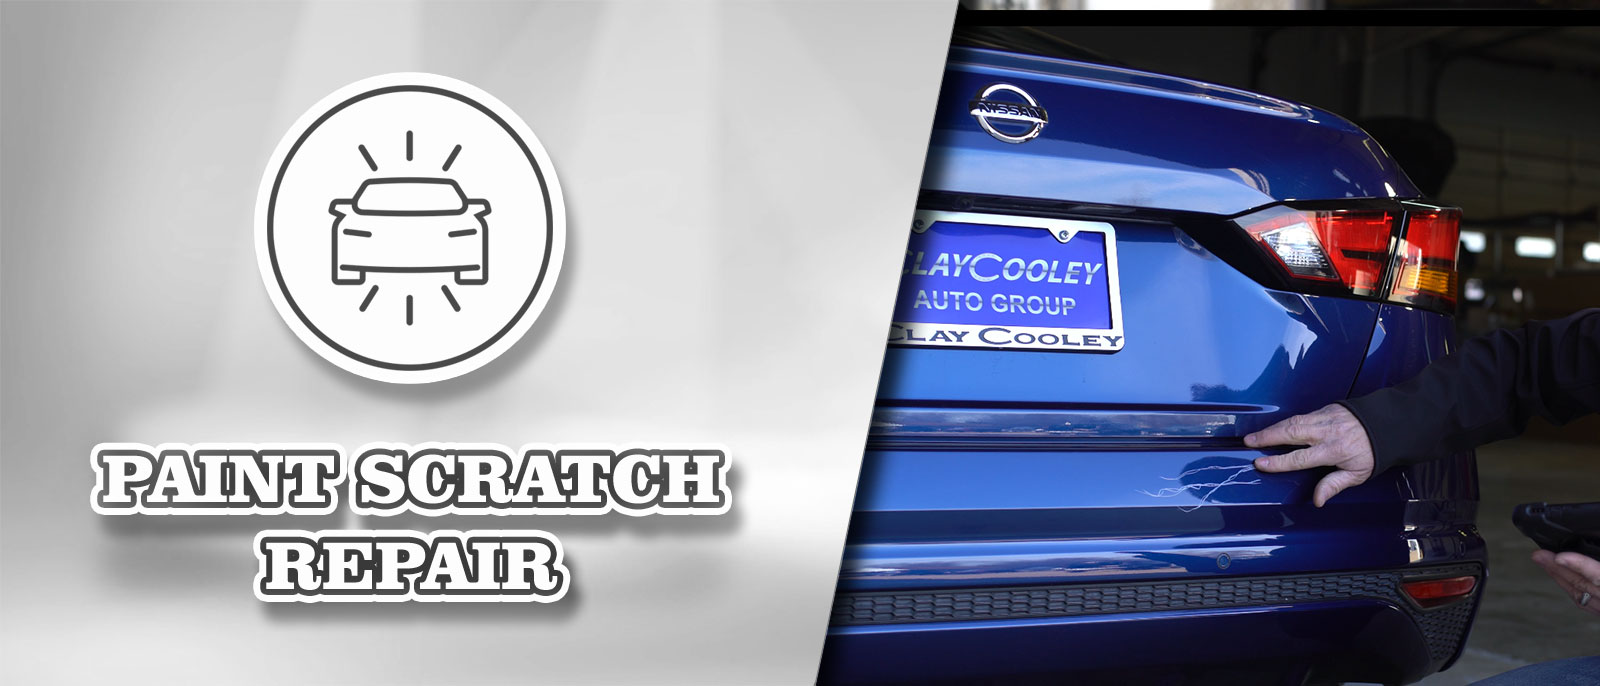 Paint Scratch Repair at Clay Cooley Volkswagen of Park Cities